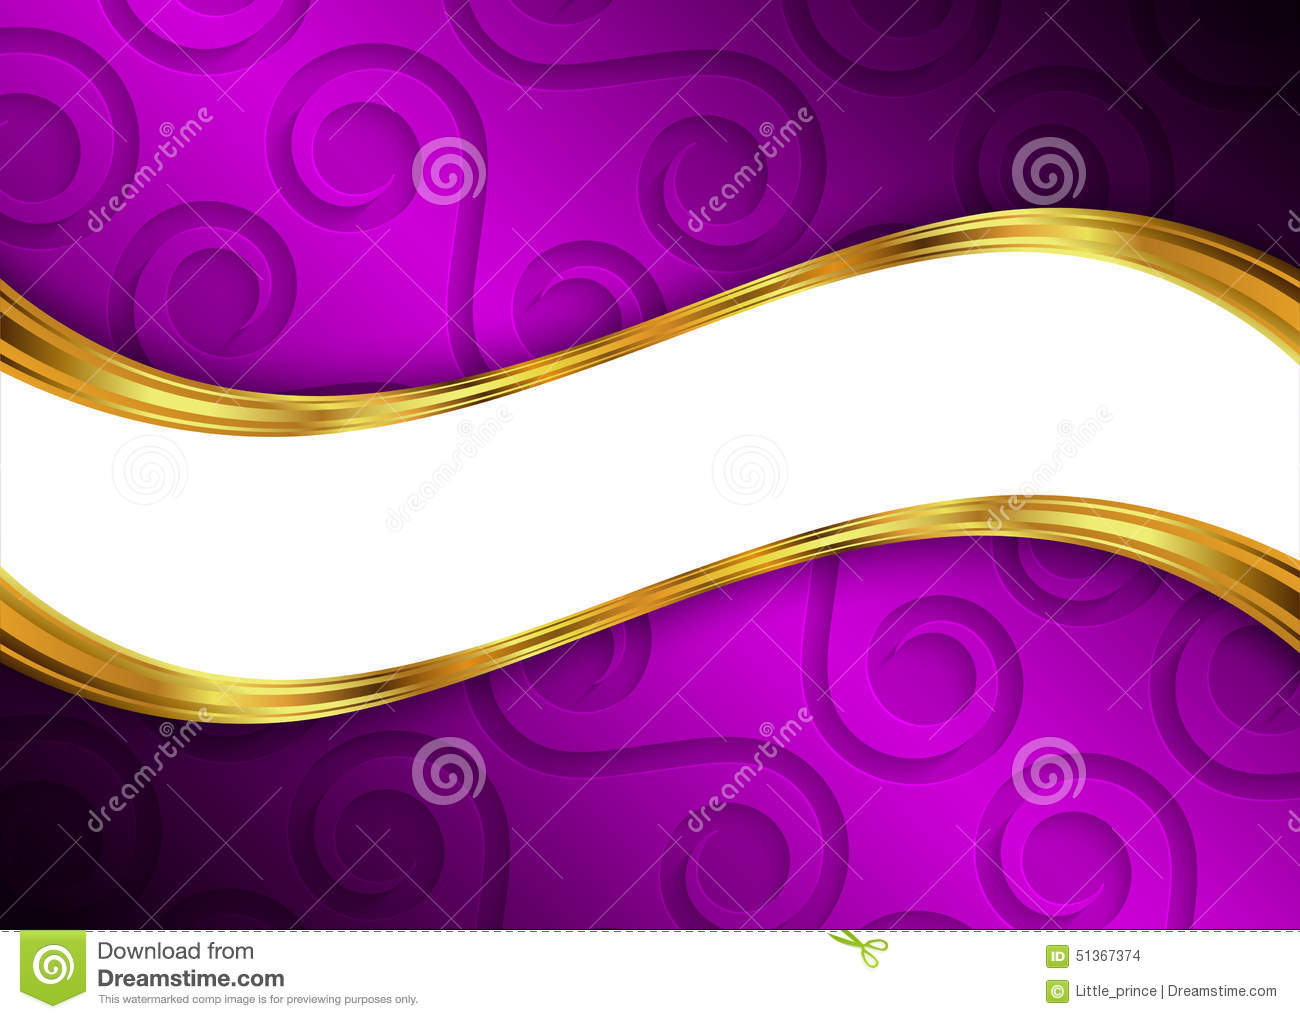 Purple And Gold Abstract Background Template For Website, Banner ...